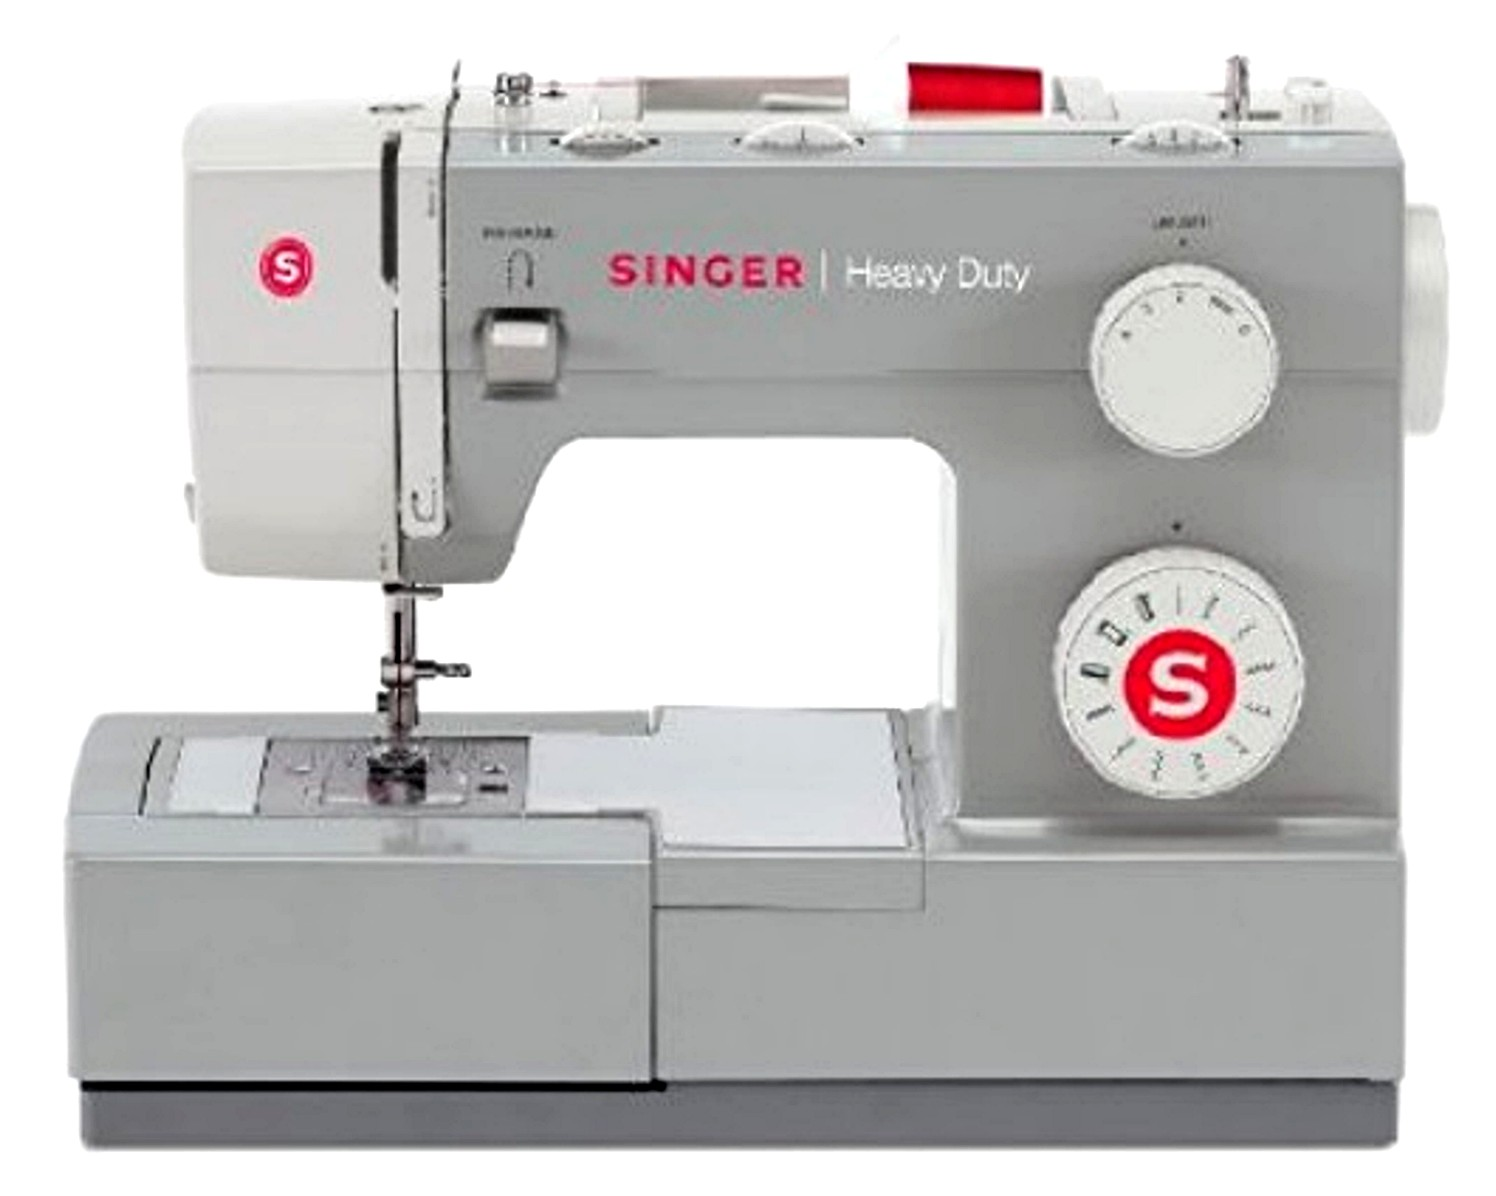 singer 4411 heavy duty sewing machine review. Black Bedroom Furniture Sets. Home Design Ideas